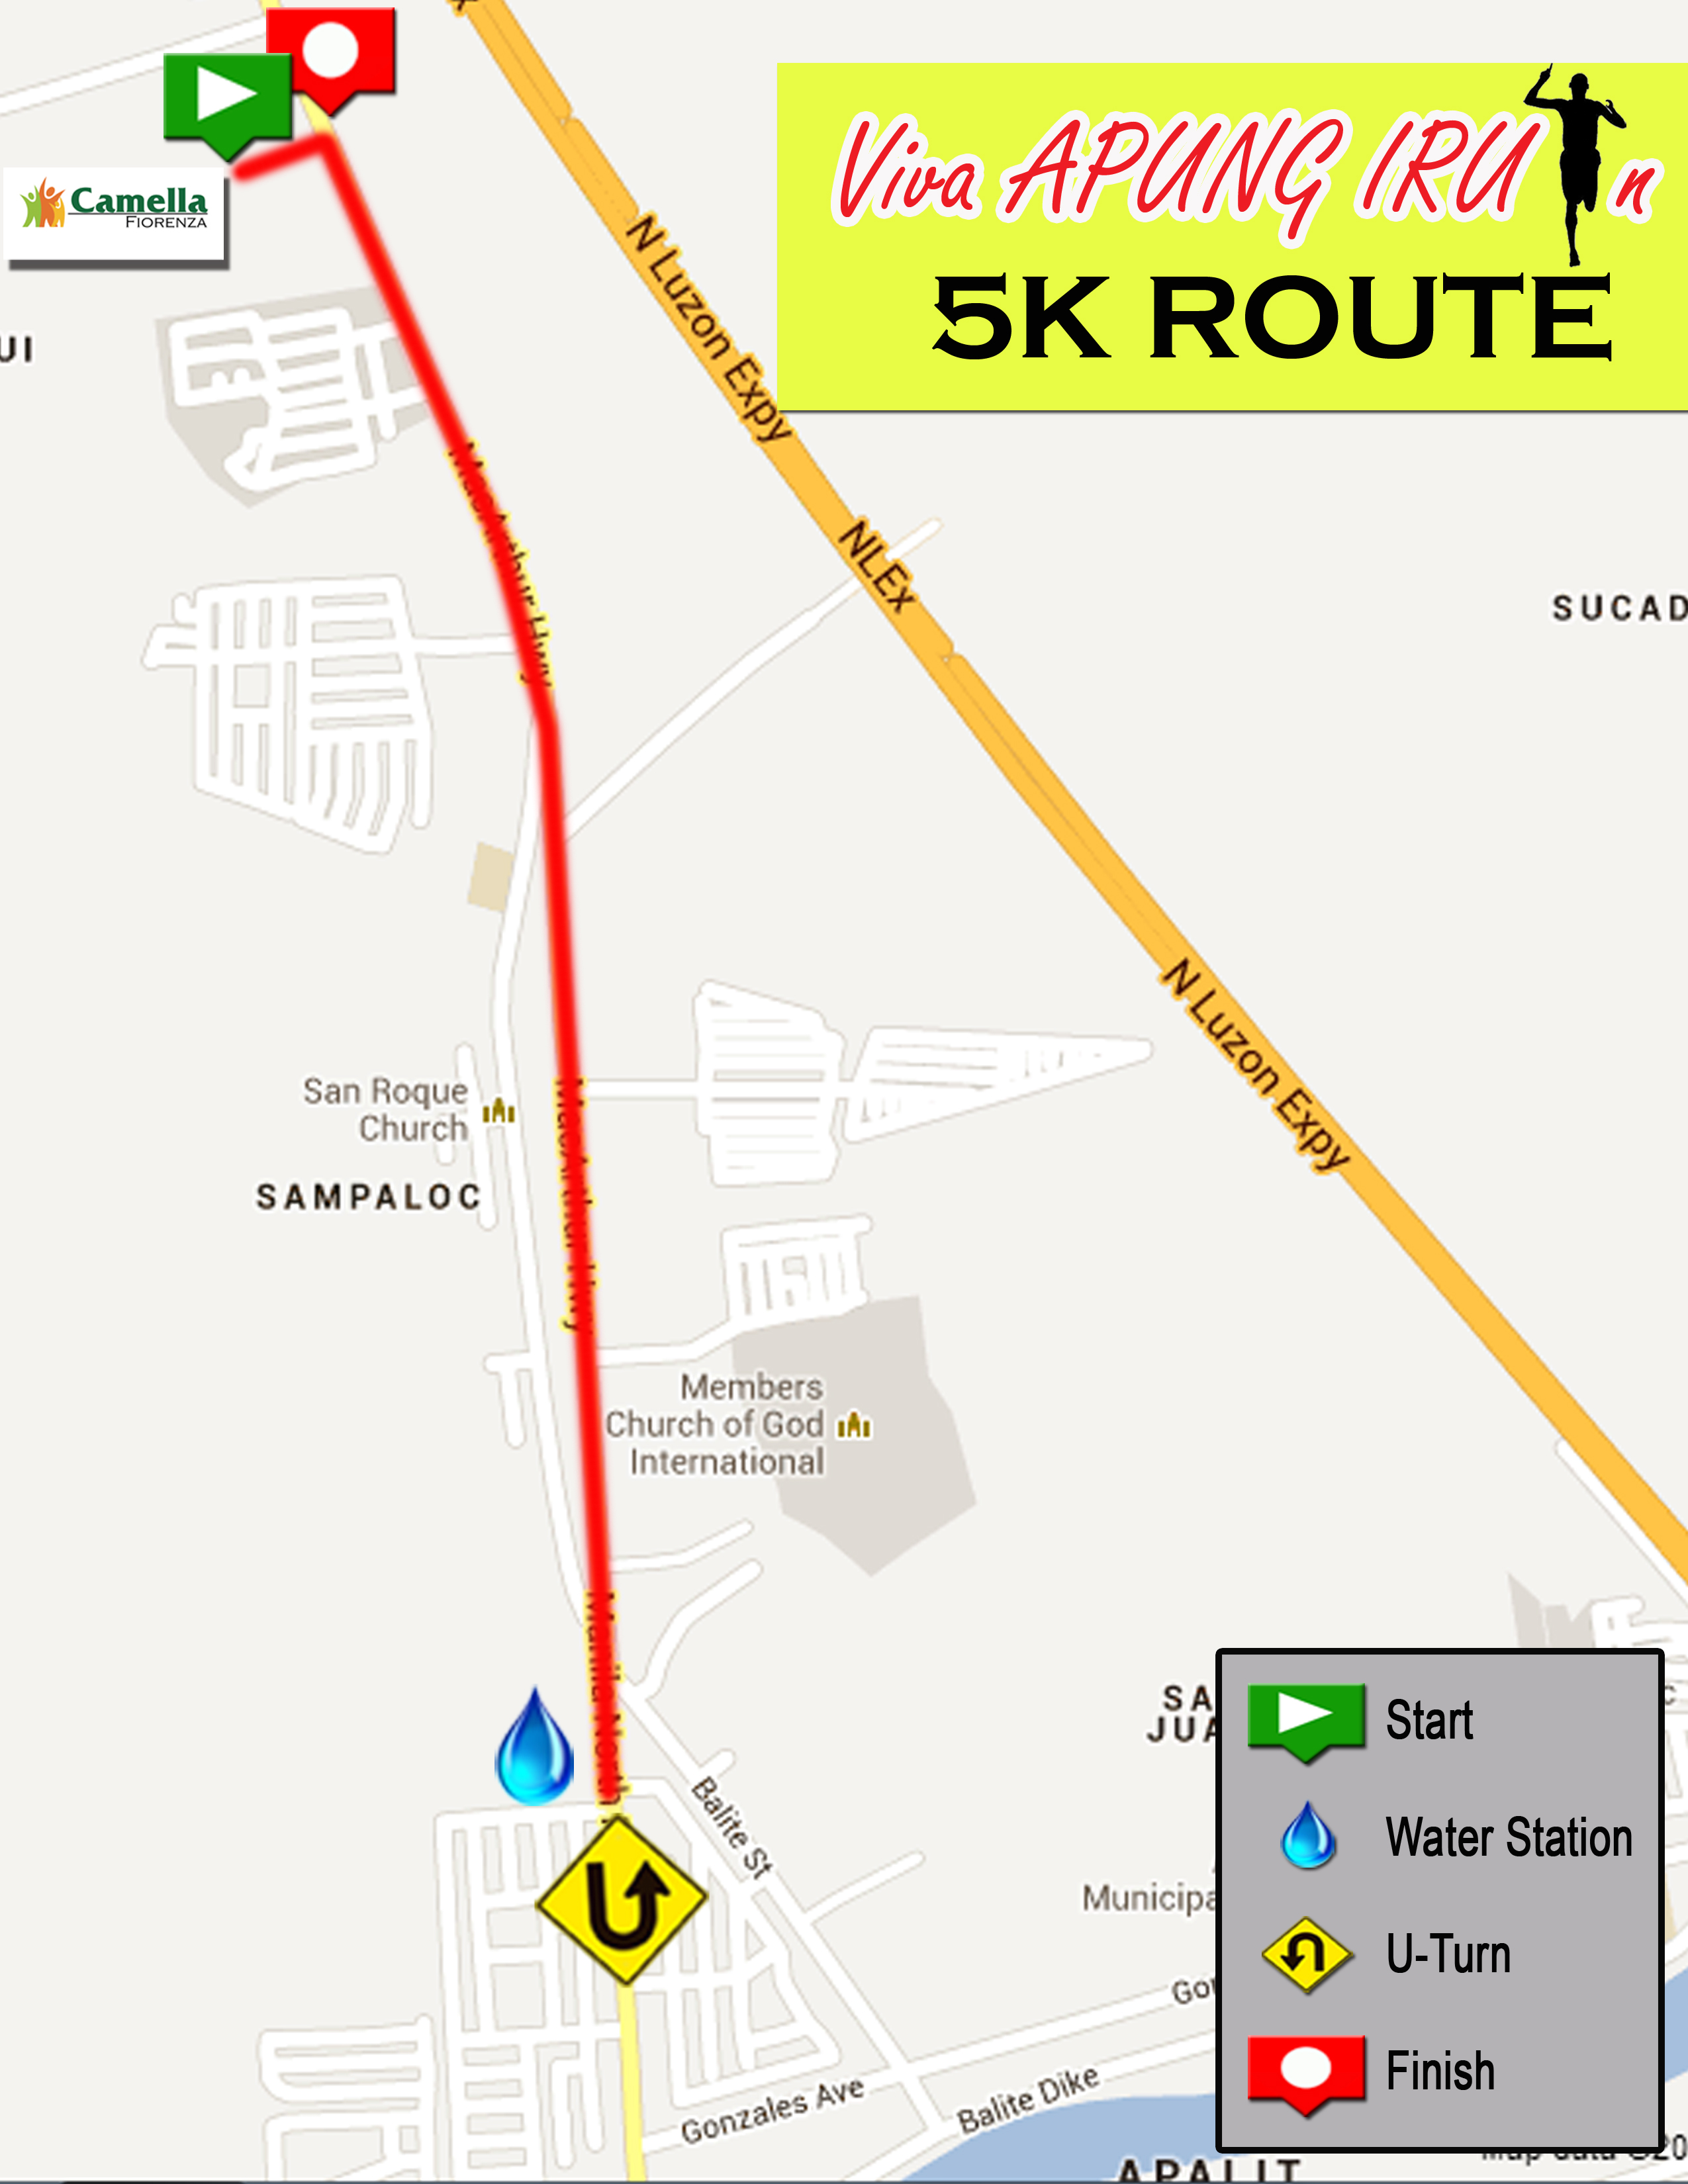 viva-apung-irun-2013-route-map-5k